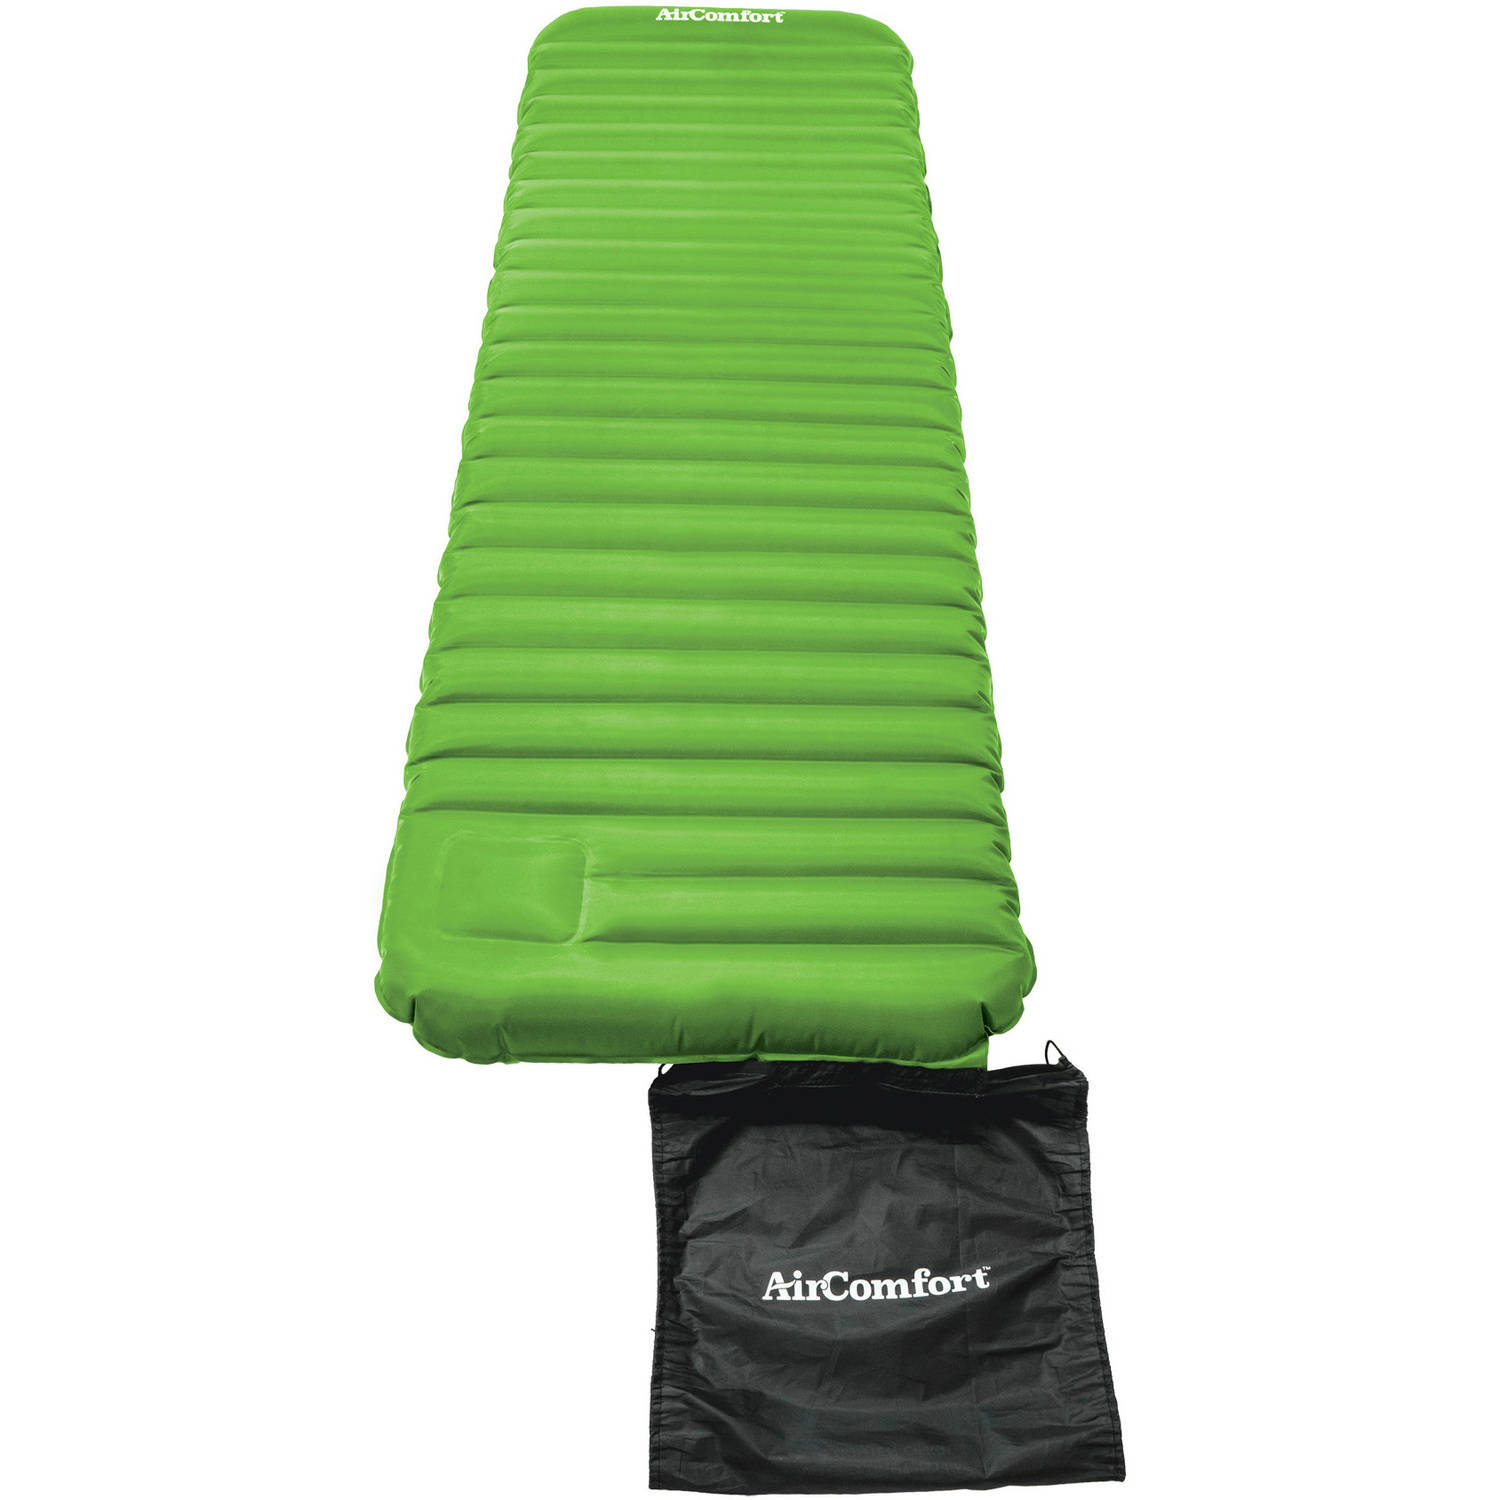 Air Comfort Roll and Go Large Inflatable Sleeping Pad - L...